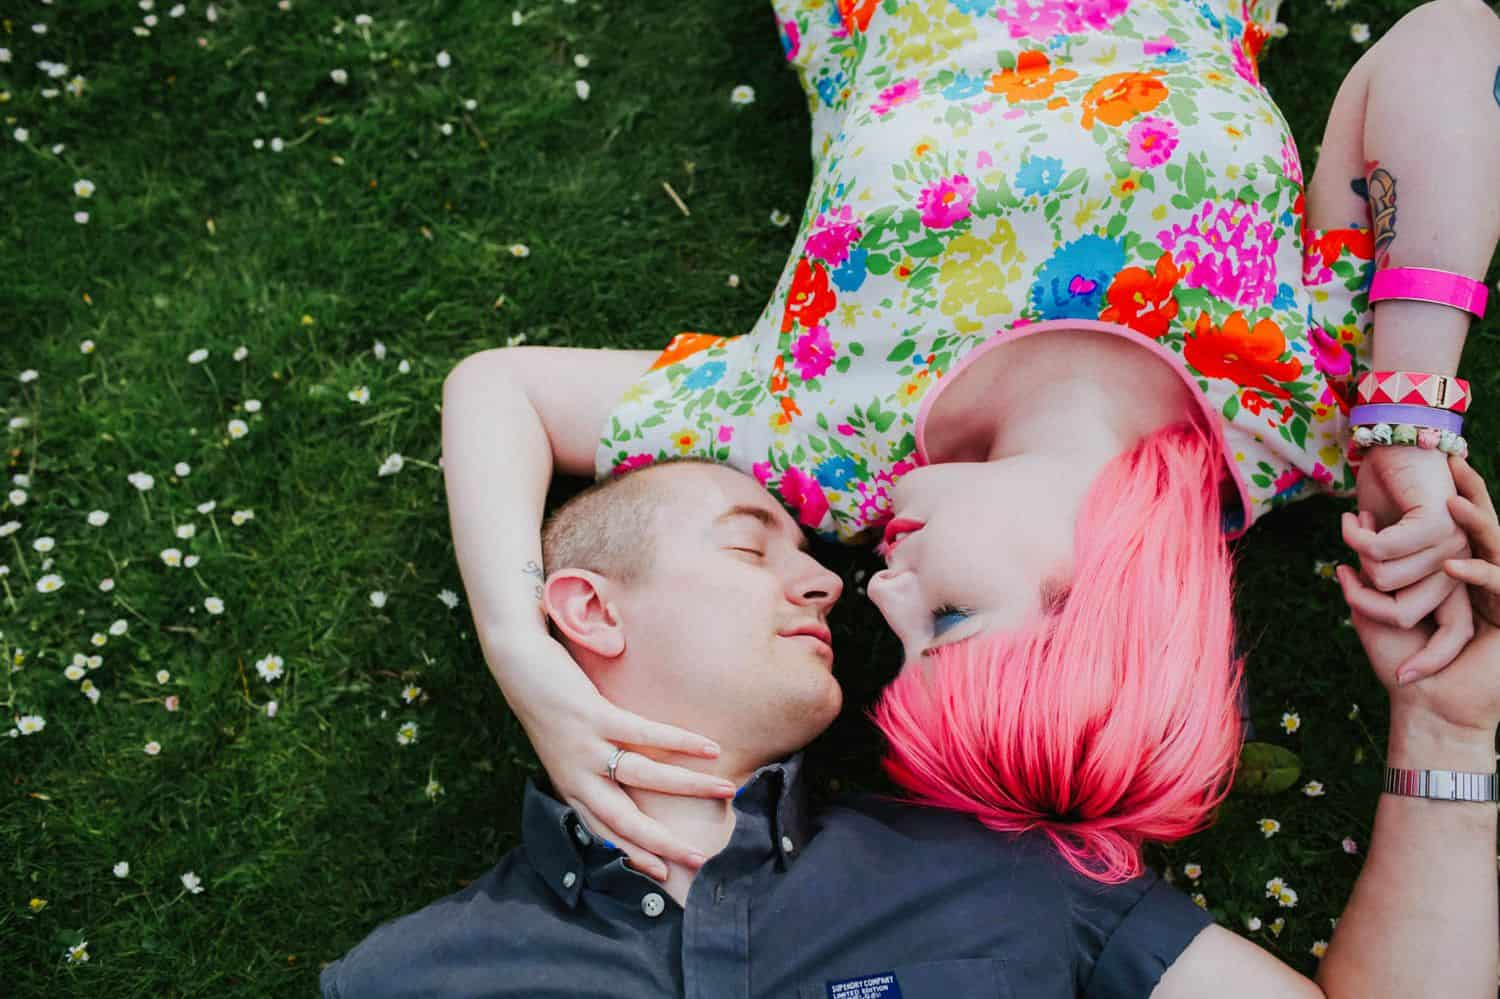 How To Make A Photography Website Your Dream Clients Can't Resist: A pink-haired woman and her partner lie face-to-face in the grass holding hands.